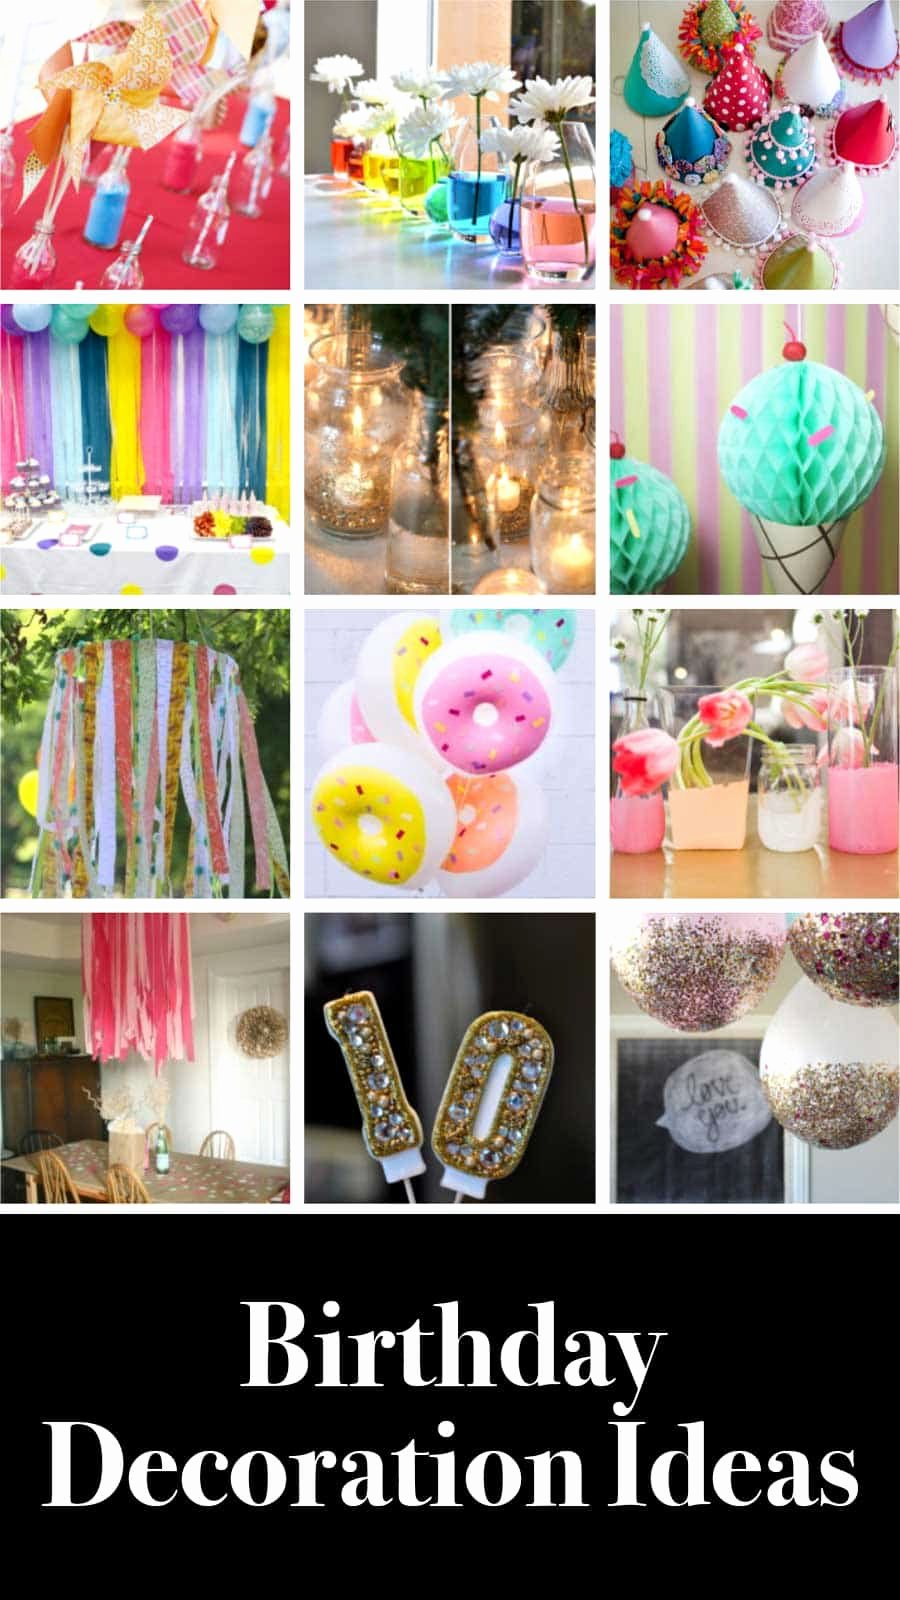 Latest Birthday Decoration Ideas at Home Beautiful 12 Easy Diy Birthday Decoration Ideas 2020